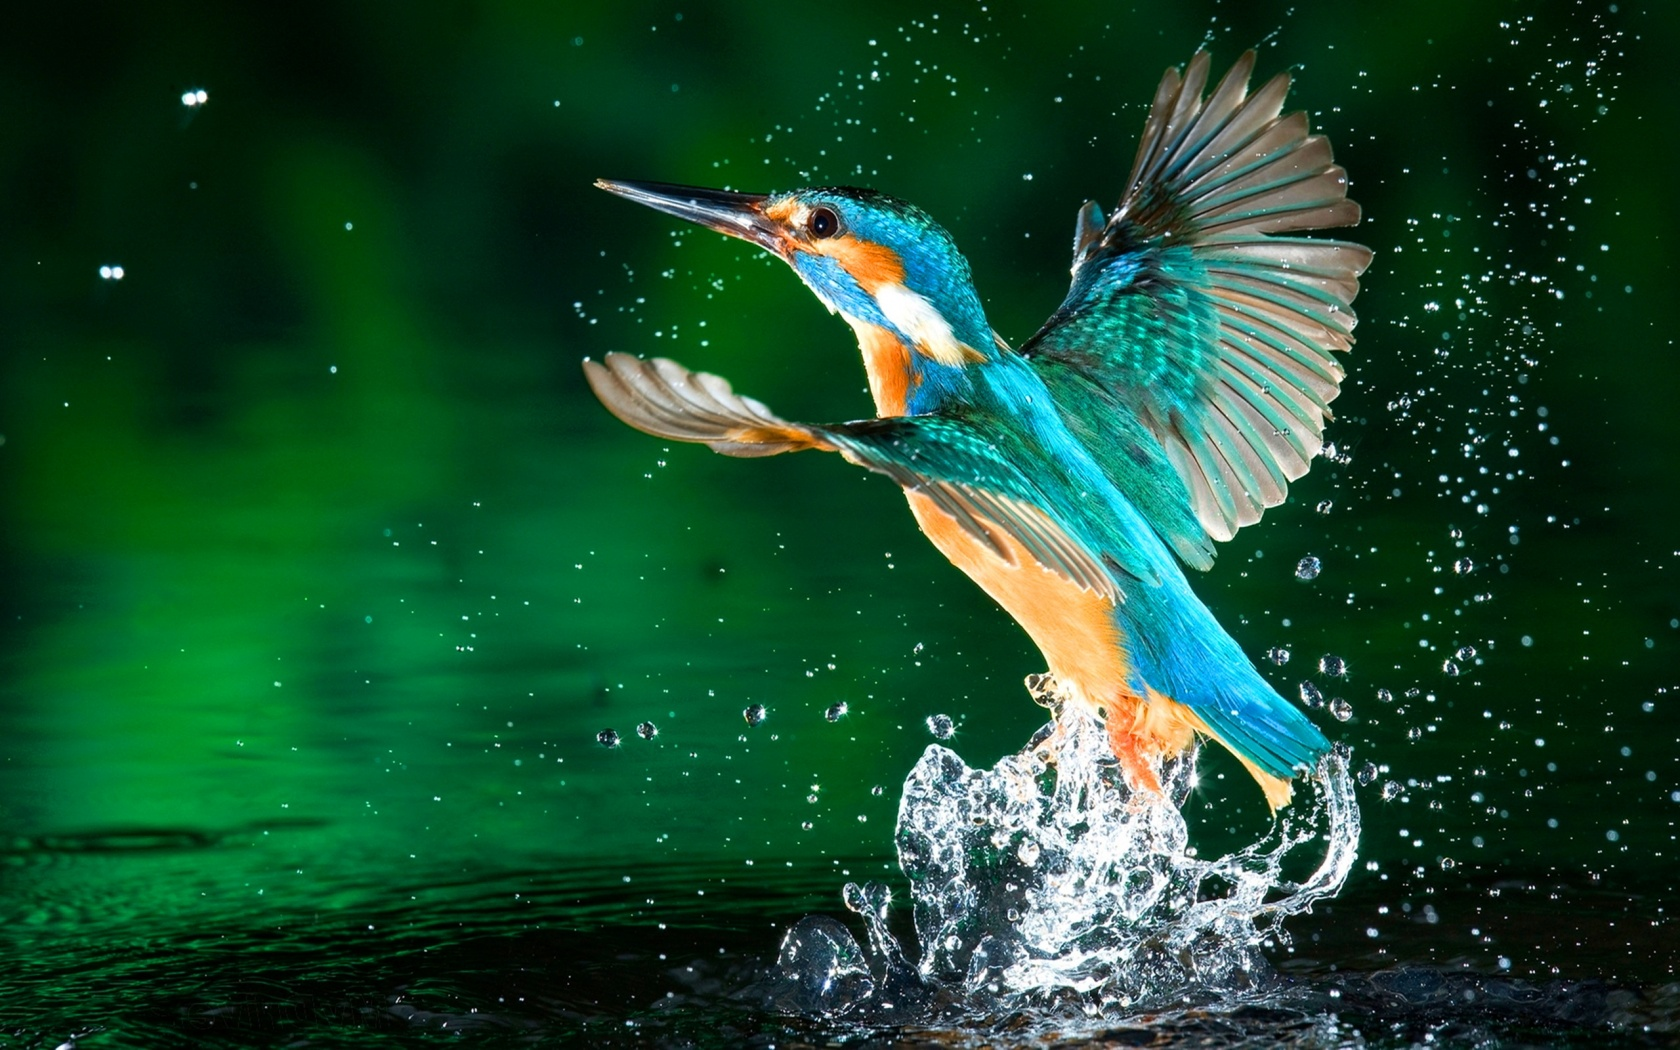 14 hd kingfisher bird wallpapers - Best animal wallpaper download ...